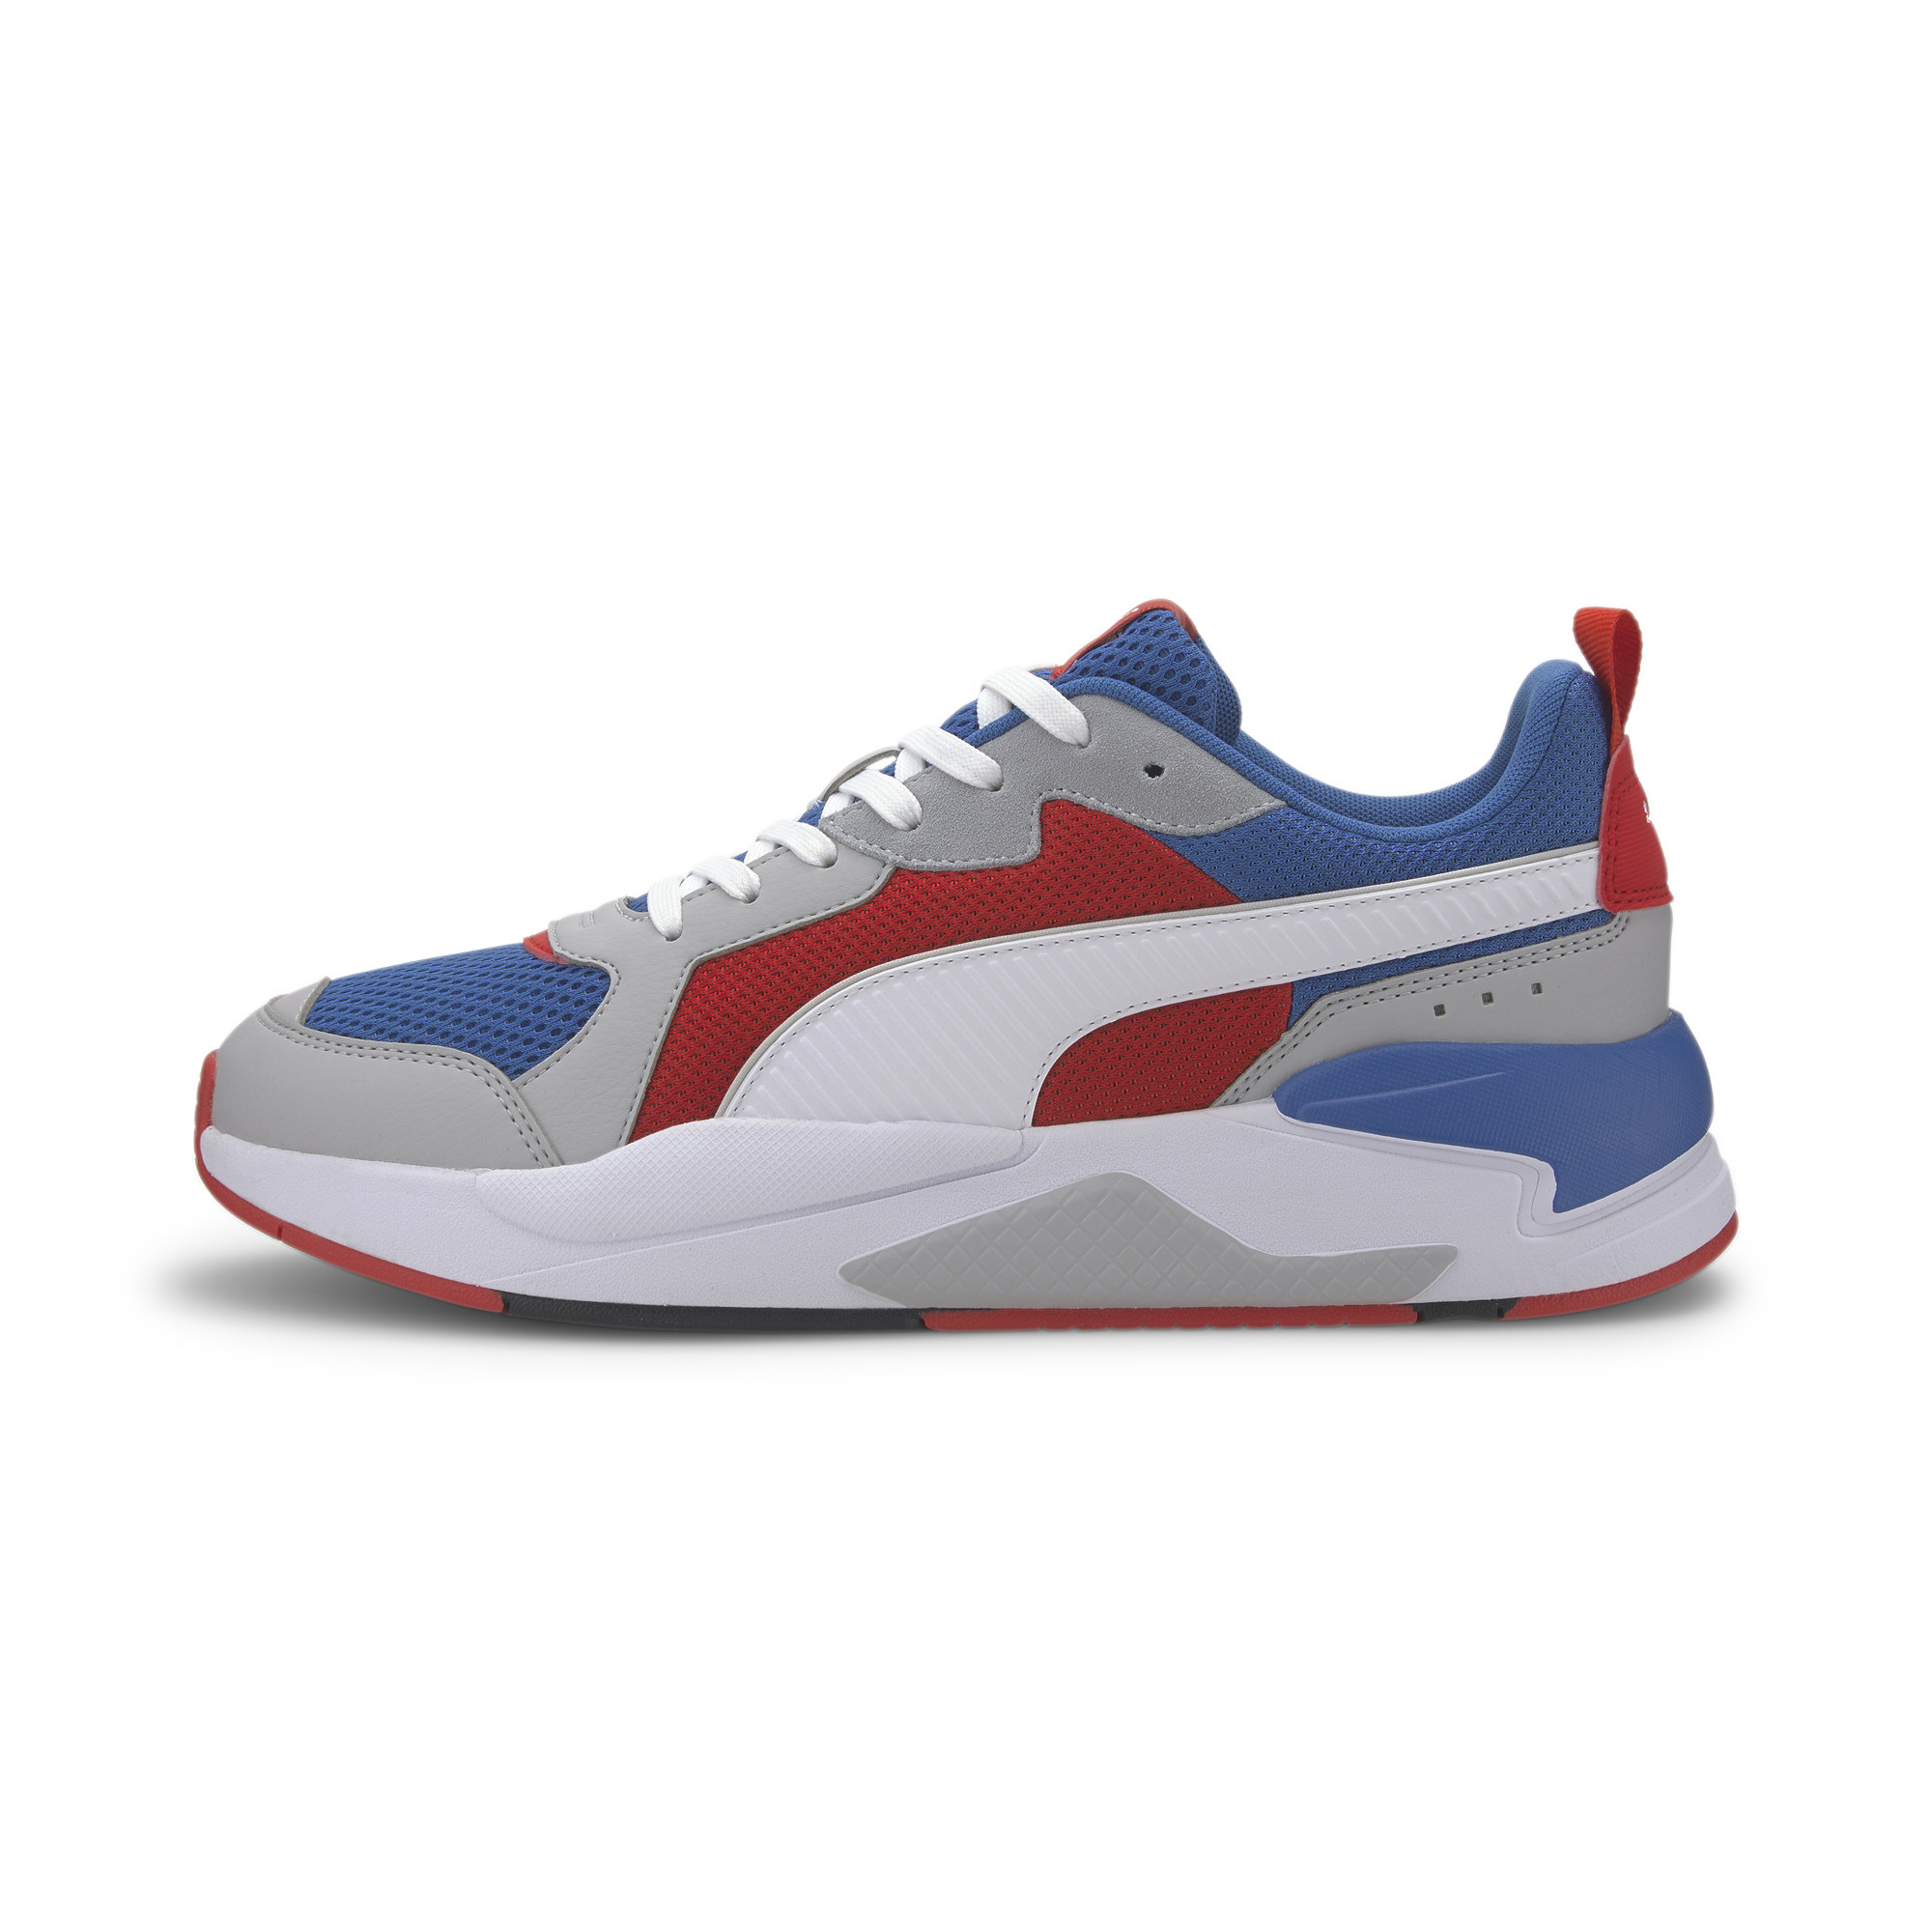 PUMA-Men-039-s-X-RAY-Sneakers thumbnail 9